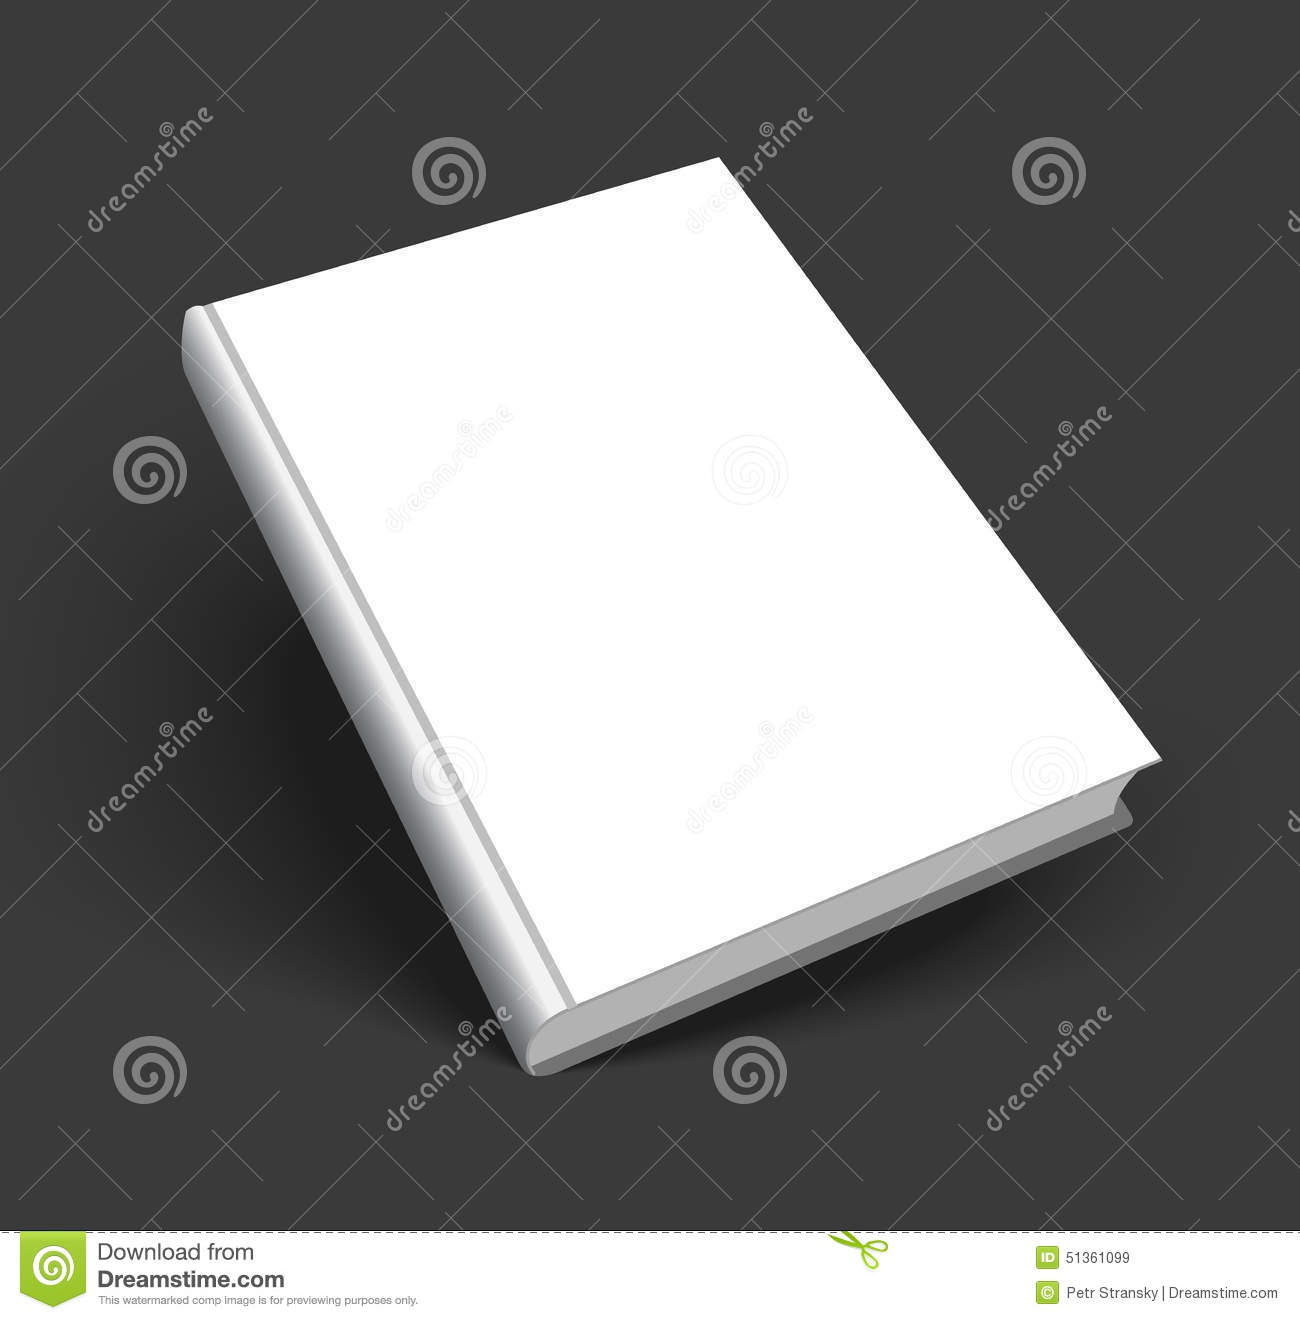 Book Cover Design Isolated Over Colorful Background : Blank book cover vector illustration isolated cartoon